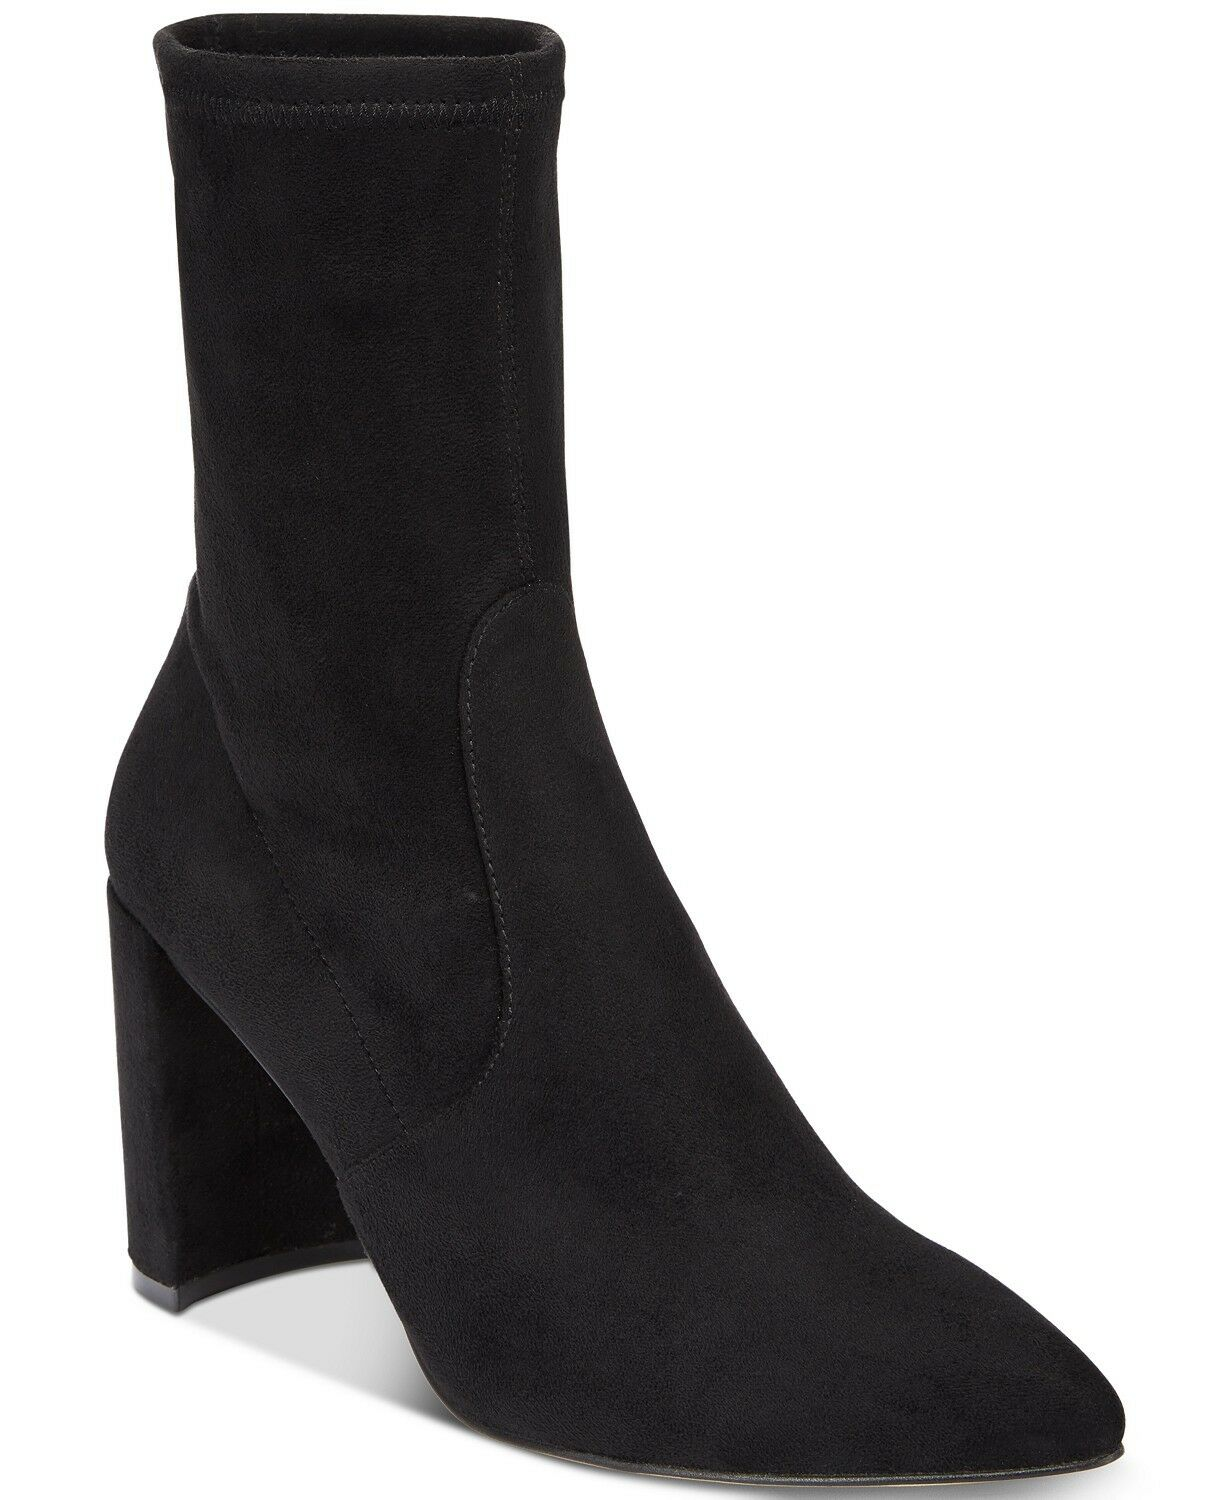 Inc International Concepts I. N.c. Femmes Savina Chaussette Bottines Taille 9